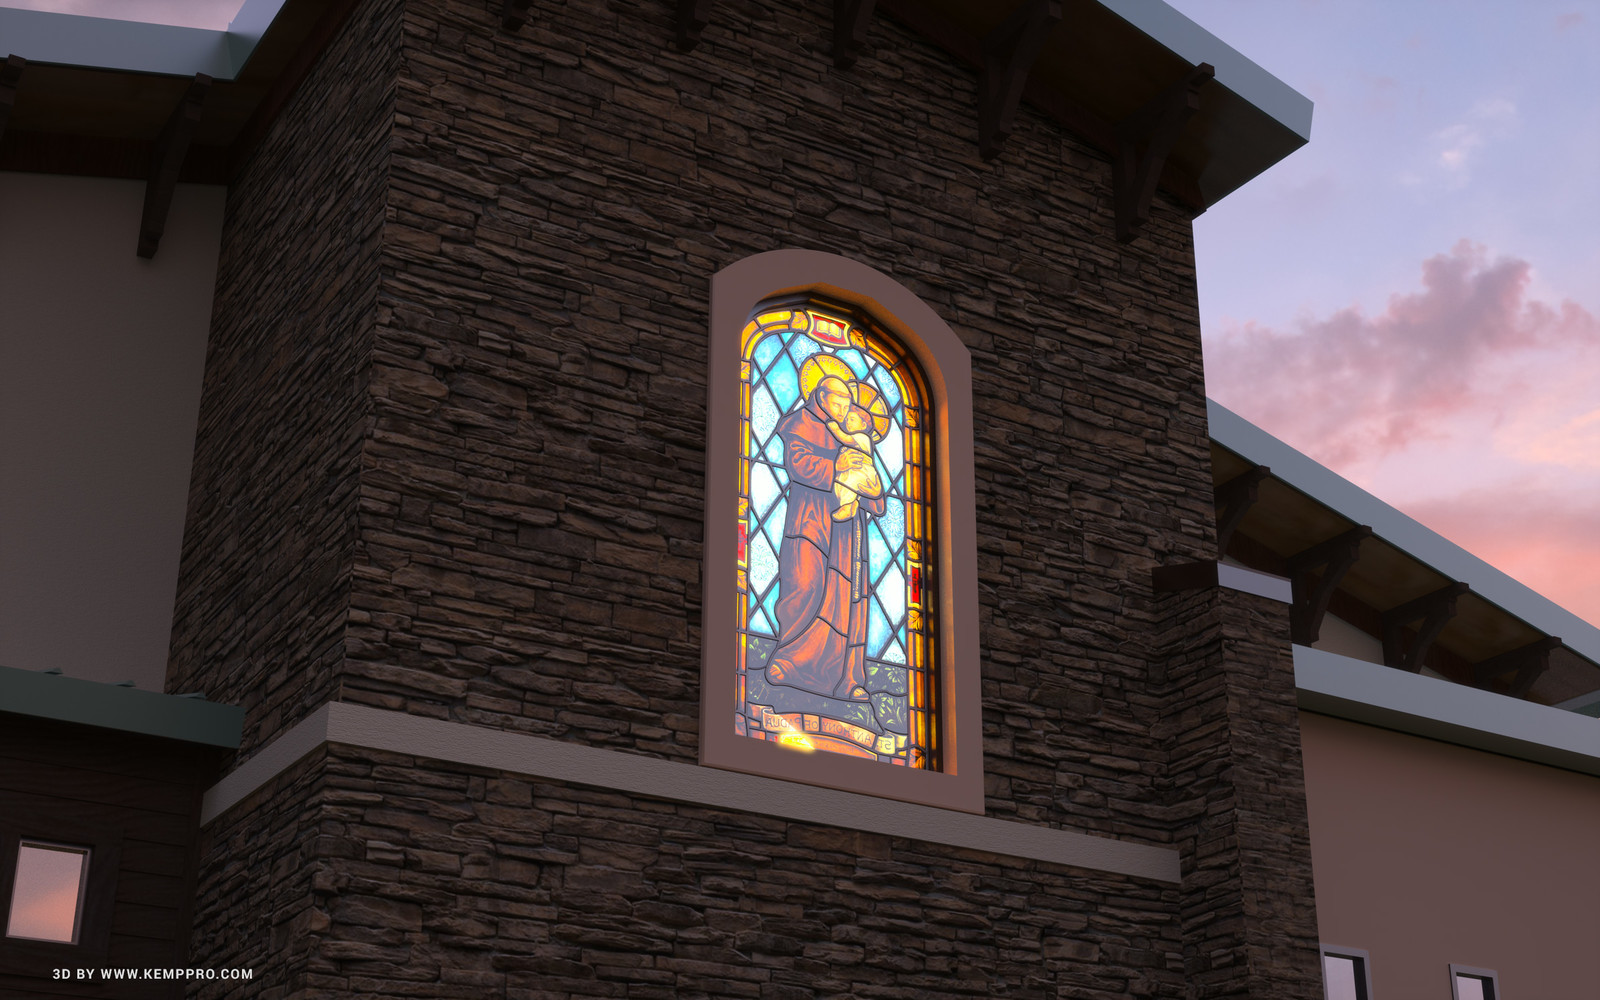 #SketchUp 2017 + #TheaRender   Stained-Glass-window-Fog-Scene-16_CK Window design and real-world construction by Judson Studios, Pasadena CA  HDR by HDRI-SKIES found here: http://hdri-skies.com/shop/hdri-sky-249/